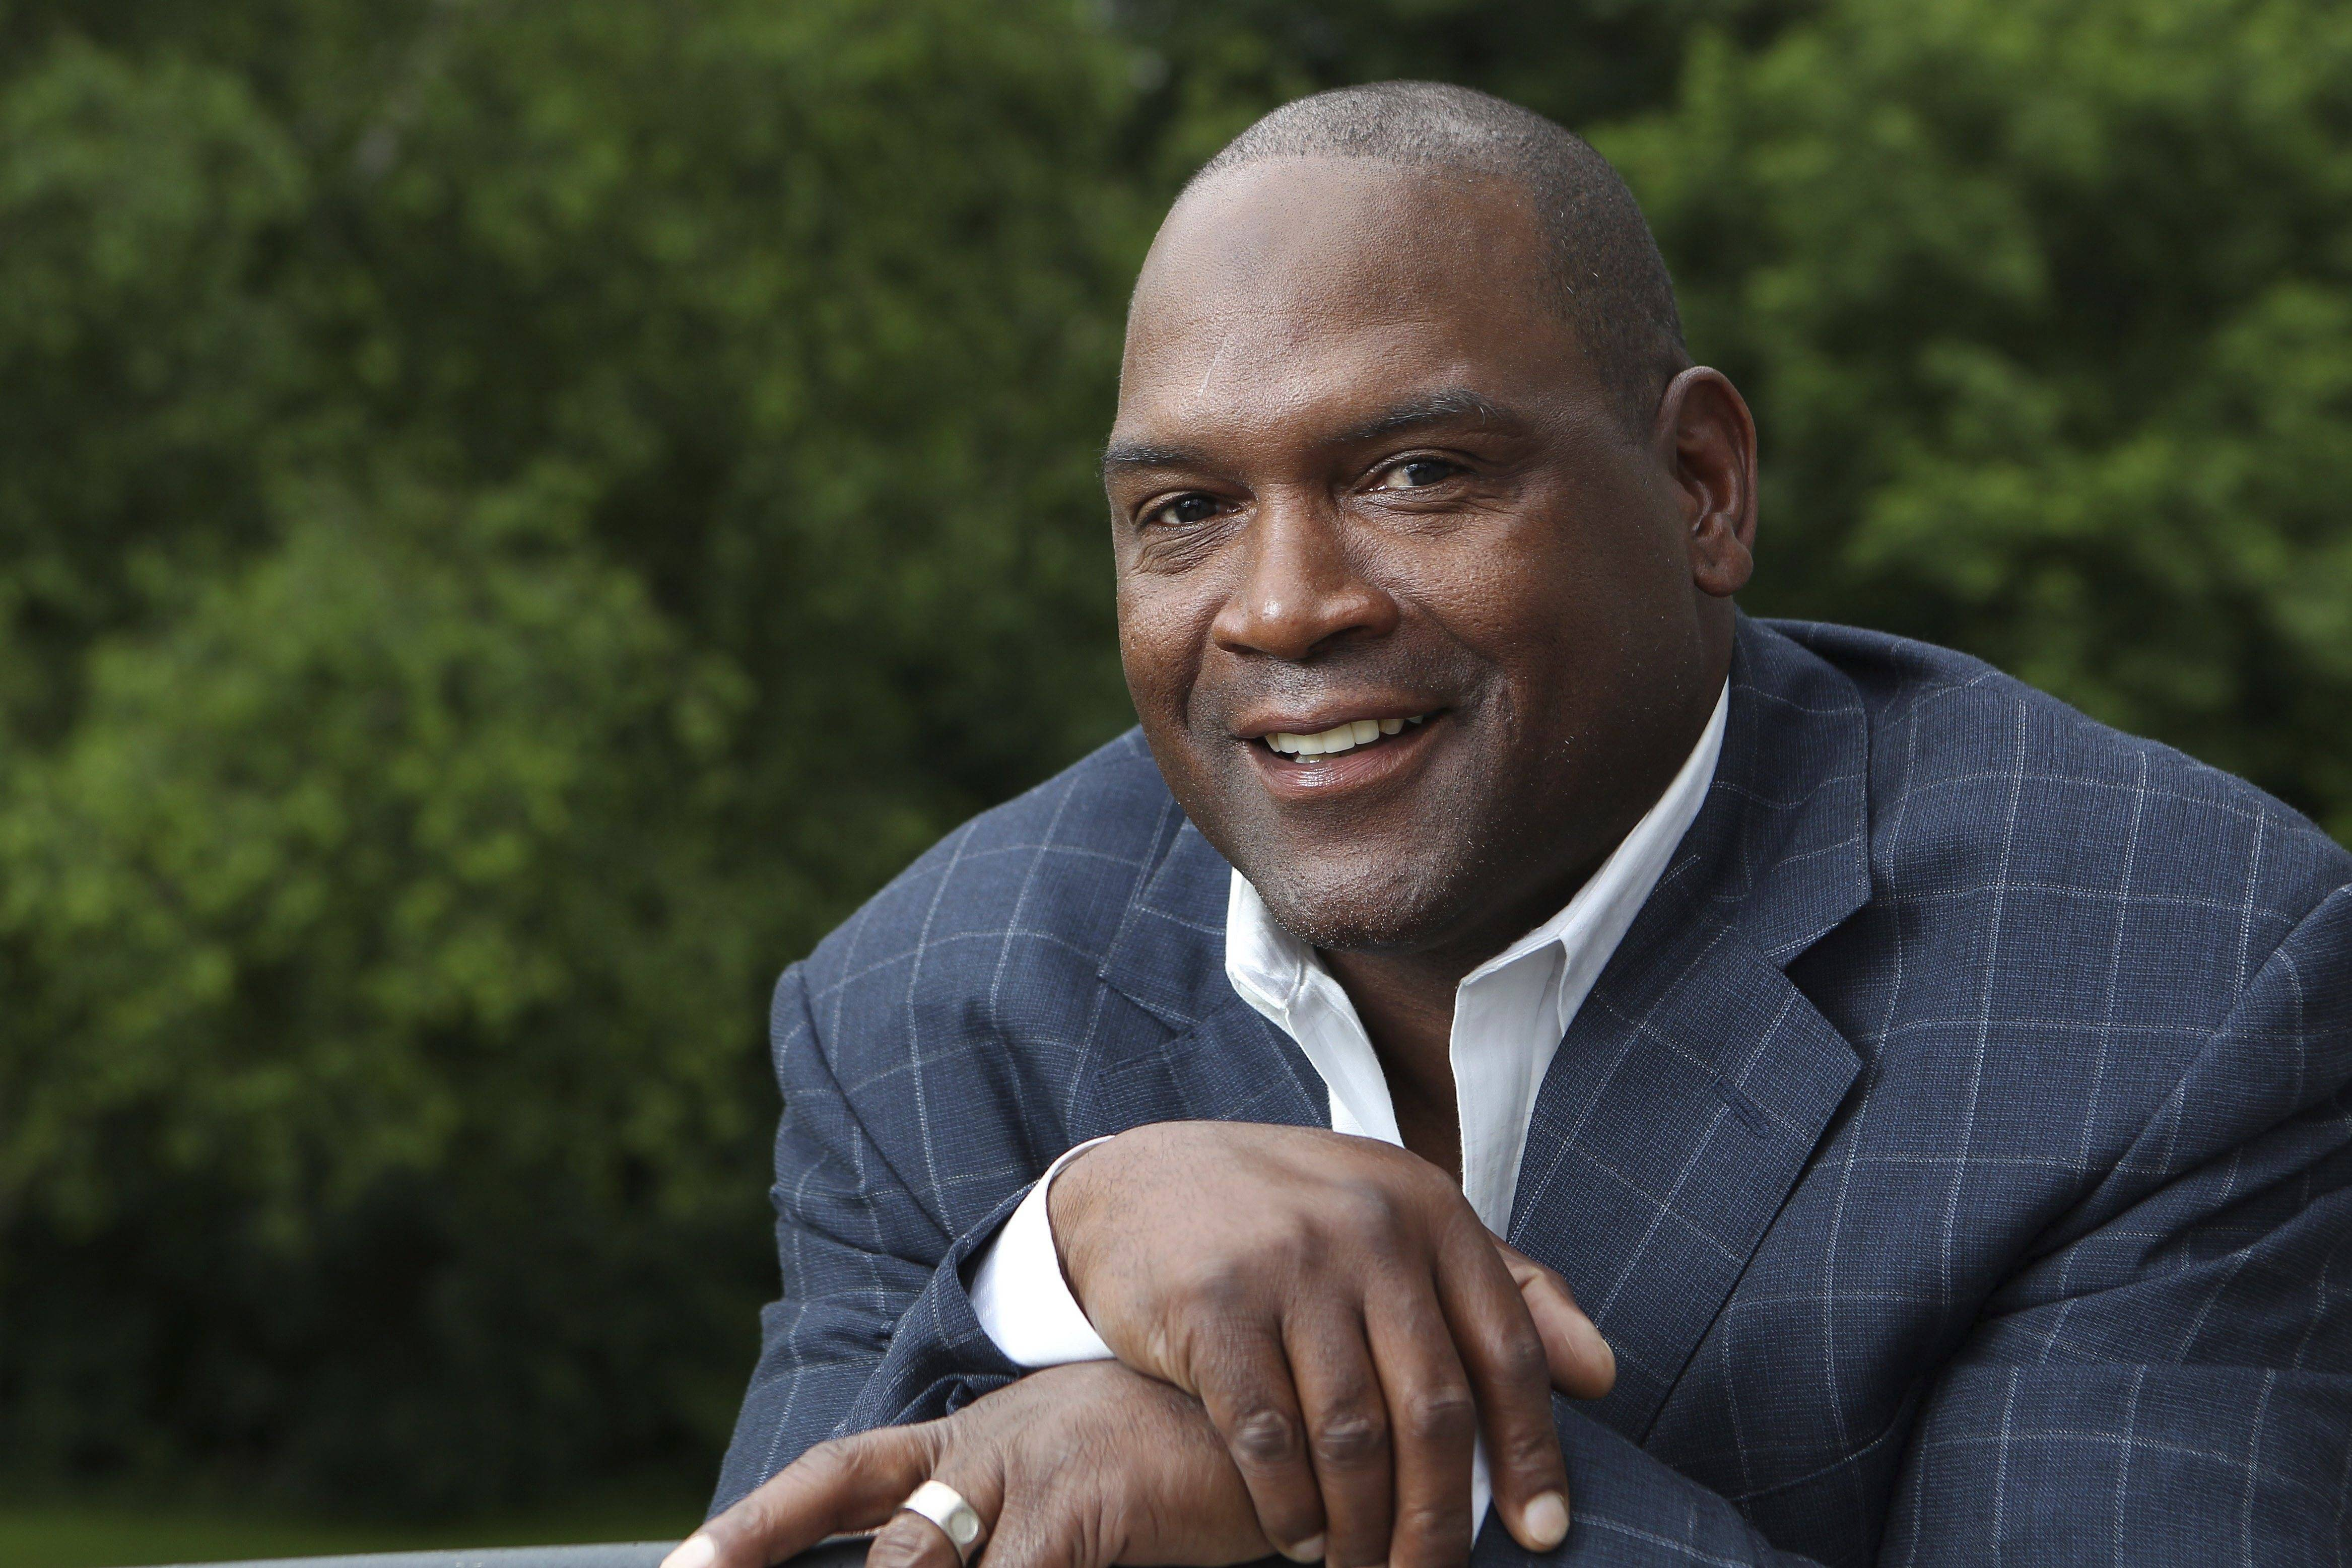 Former White Sox player Tim Raines, who played 13 seasons for the Montreal Expos, was voted into baseball's Hall of Fame on Wednesday,.